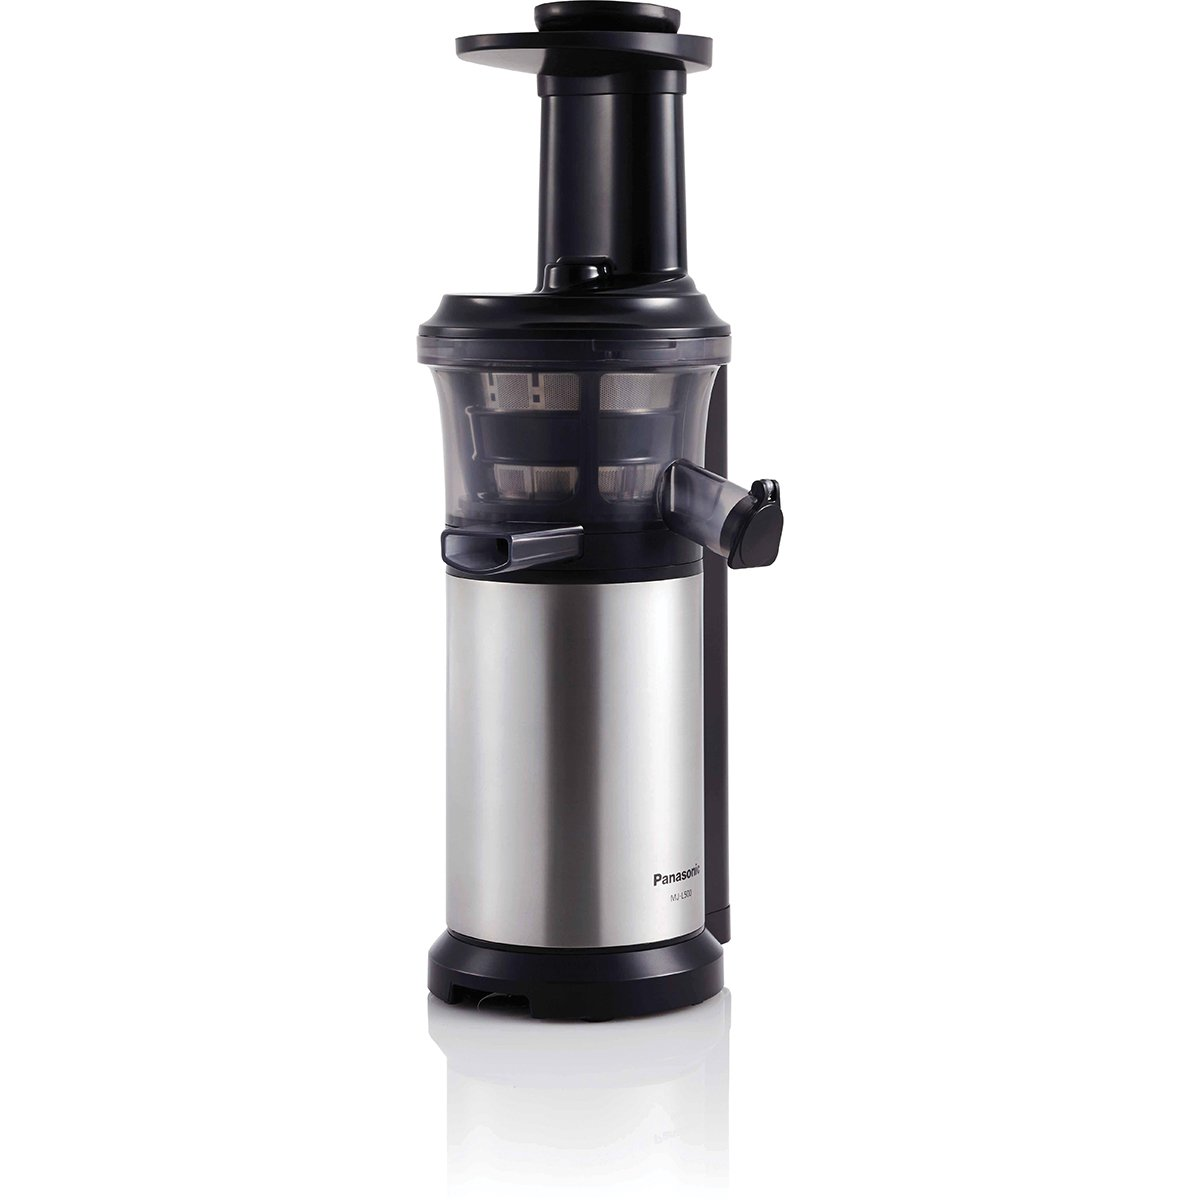 Panasonic Slow Juicer Prisjakt : Panasonic MJ-L500SST Slow Juicer Appliances Online